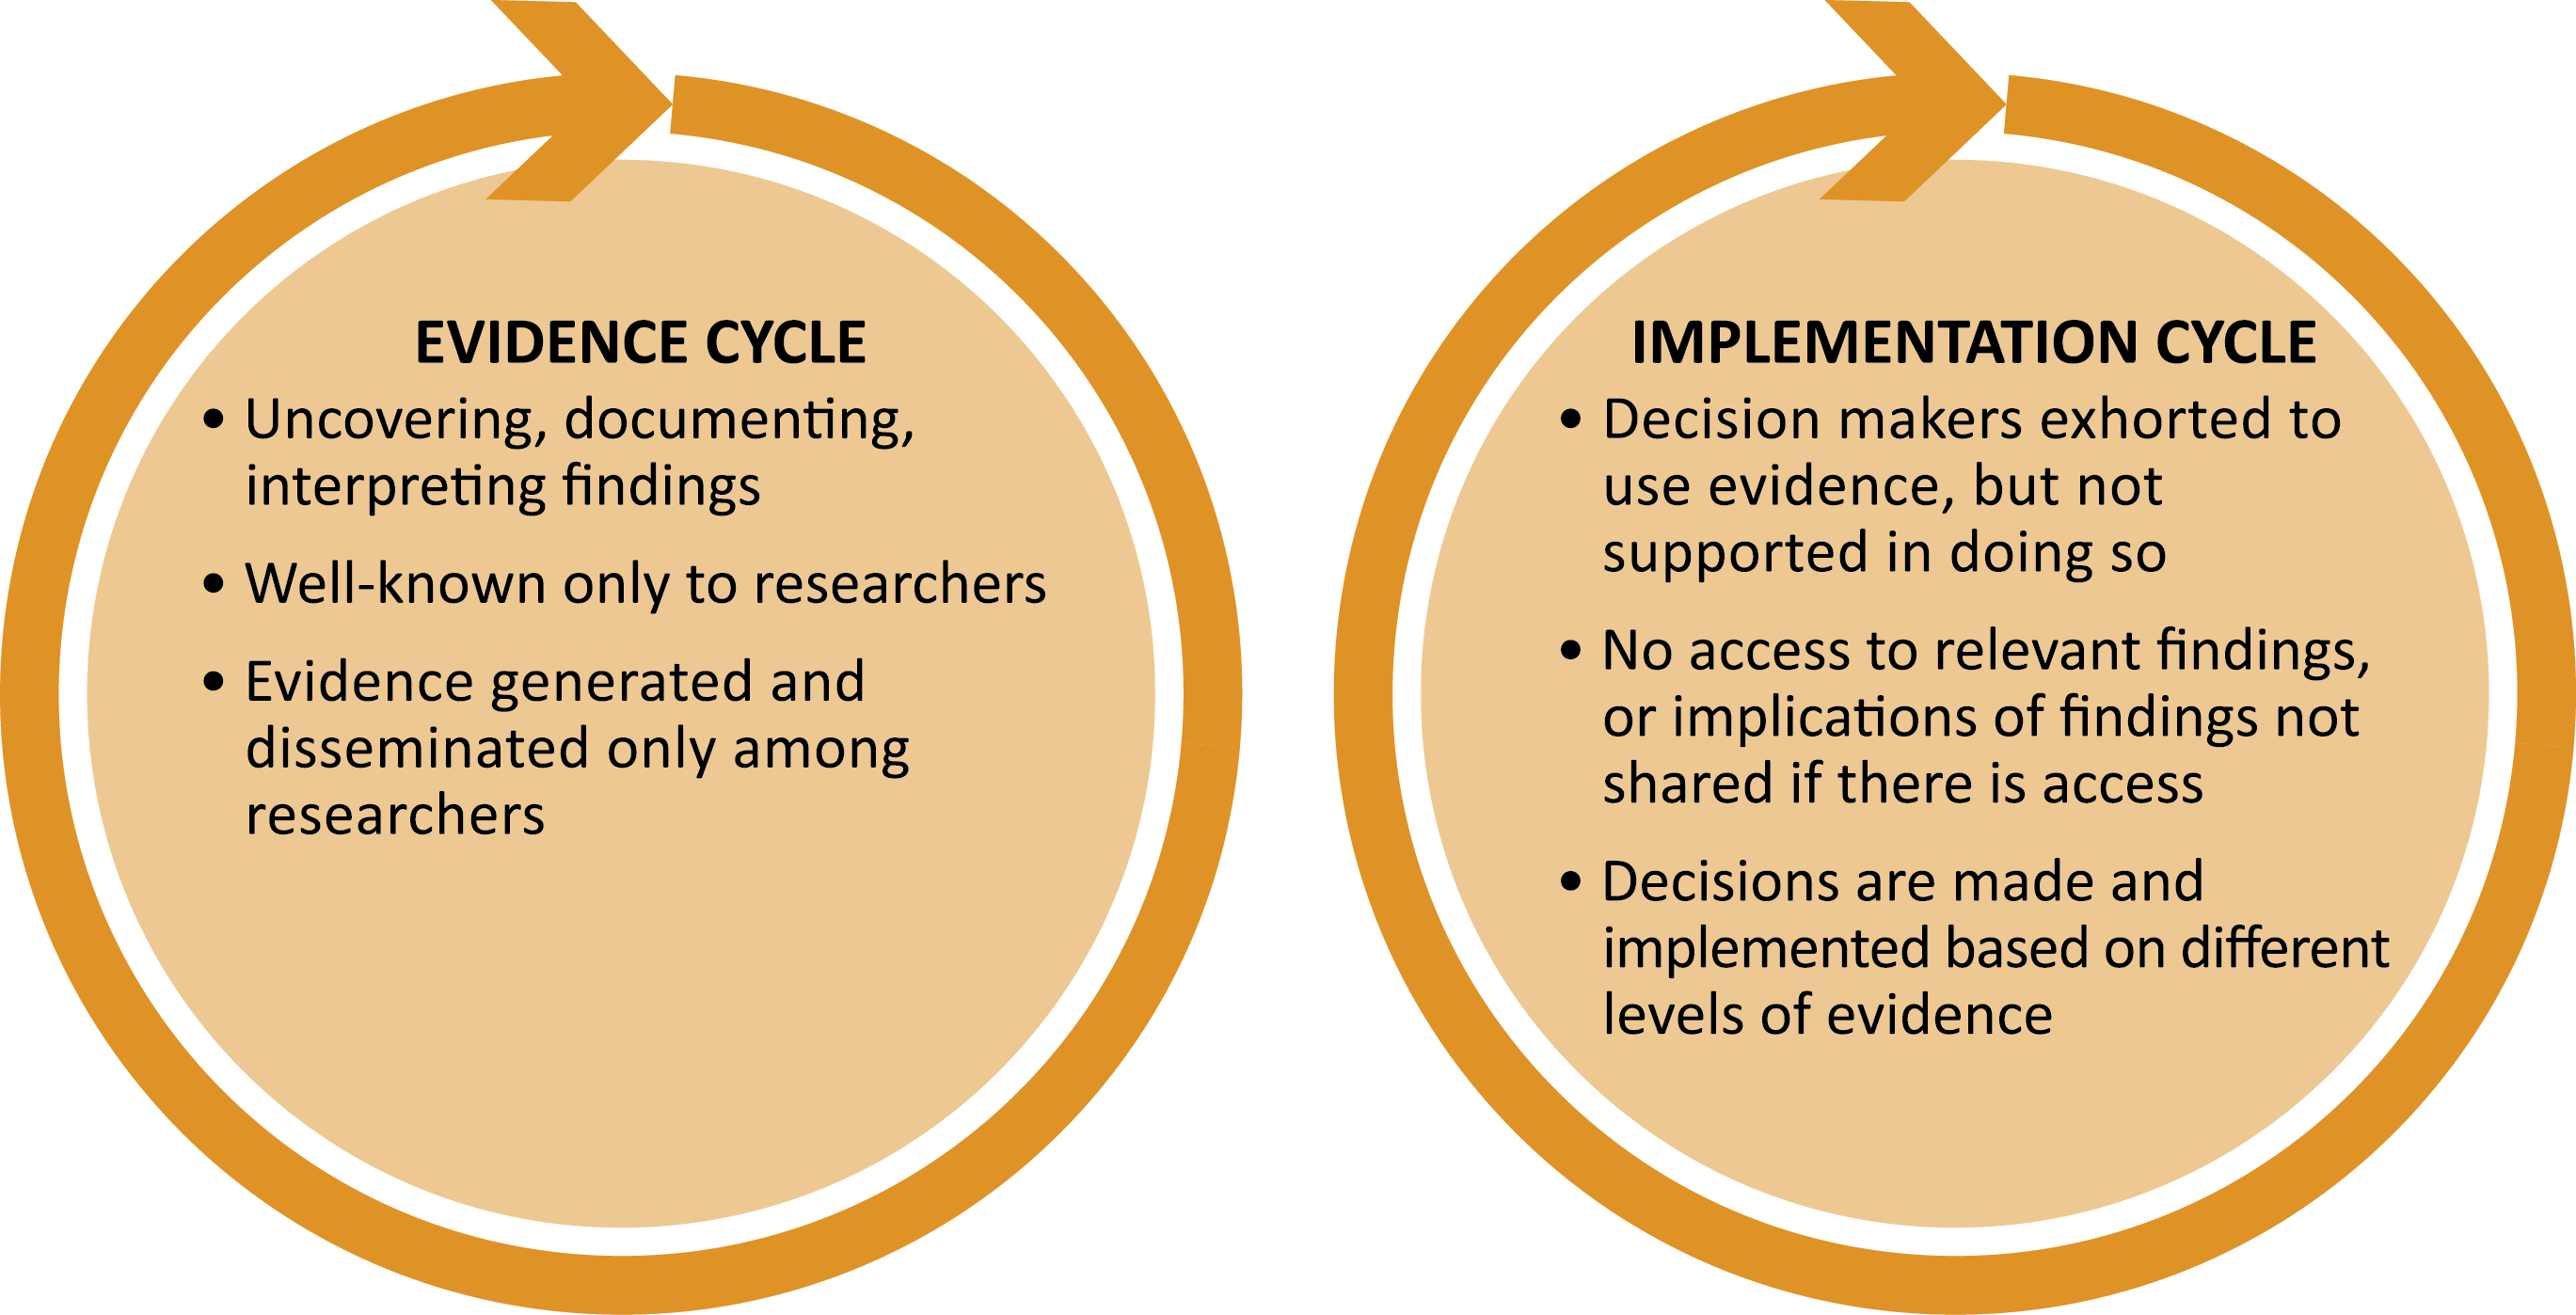 What-is-unique-about-the-researcher's-role_evidenceCycle.png#asset:491